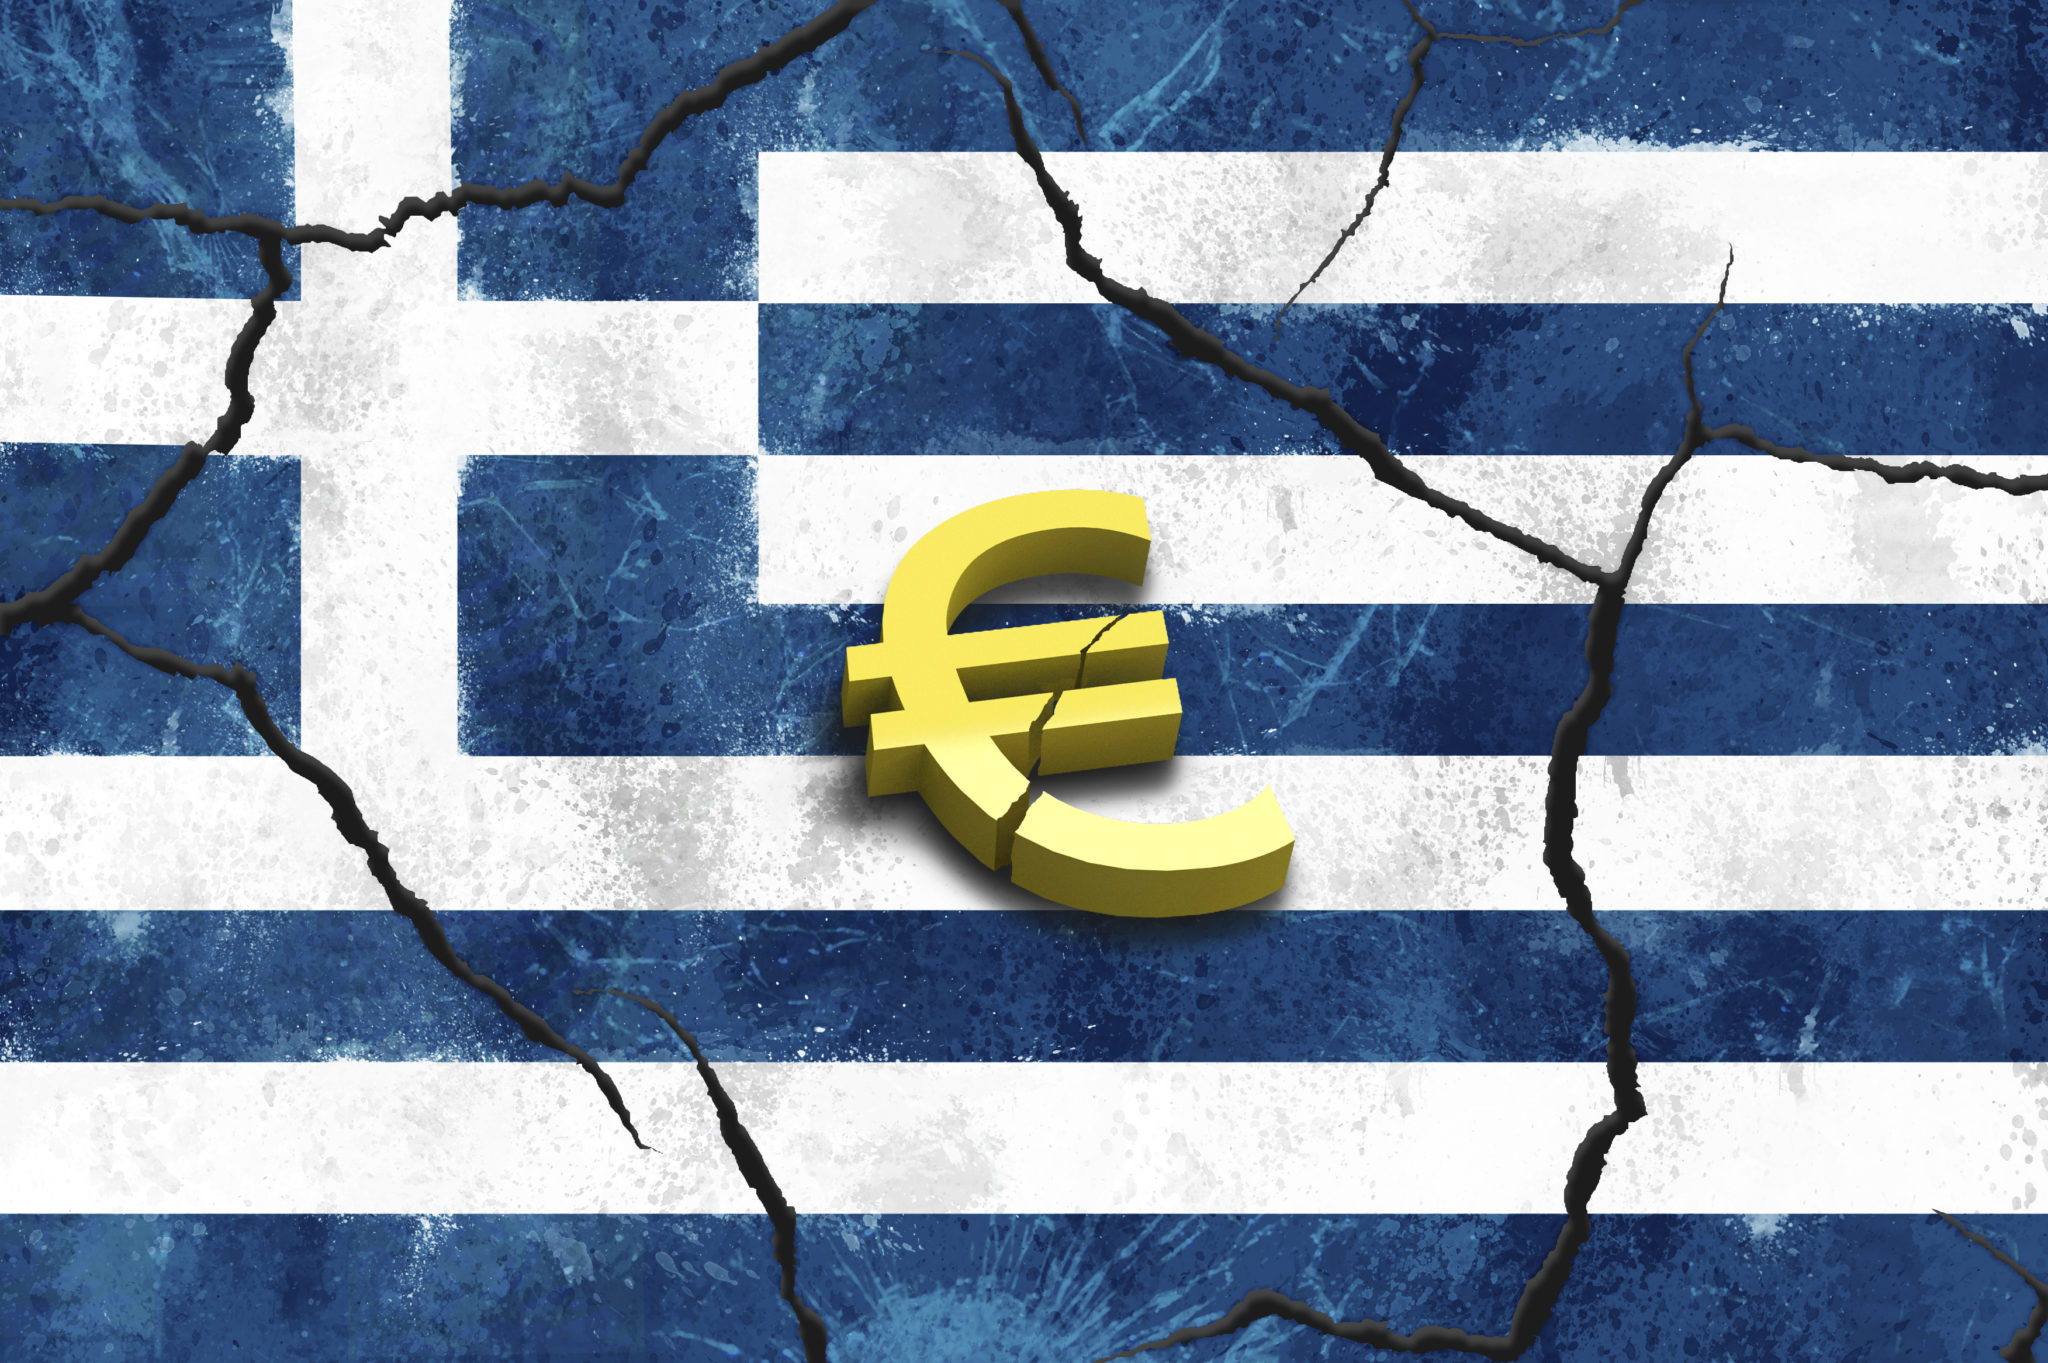 grexit the solution to the euro The grexit is becoming evermore likely, causing negative sentiment within the markets this is evident when looking at the first quarter of 2015, which demonstrates an increase in the main index of the euro area, with some indices reaching all time highs coupled with a decline in interest rates (some.